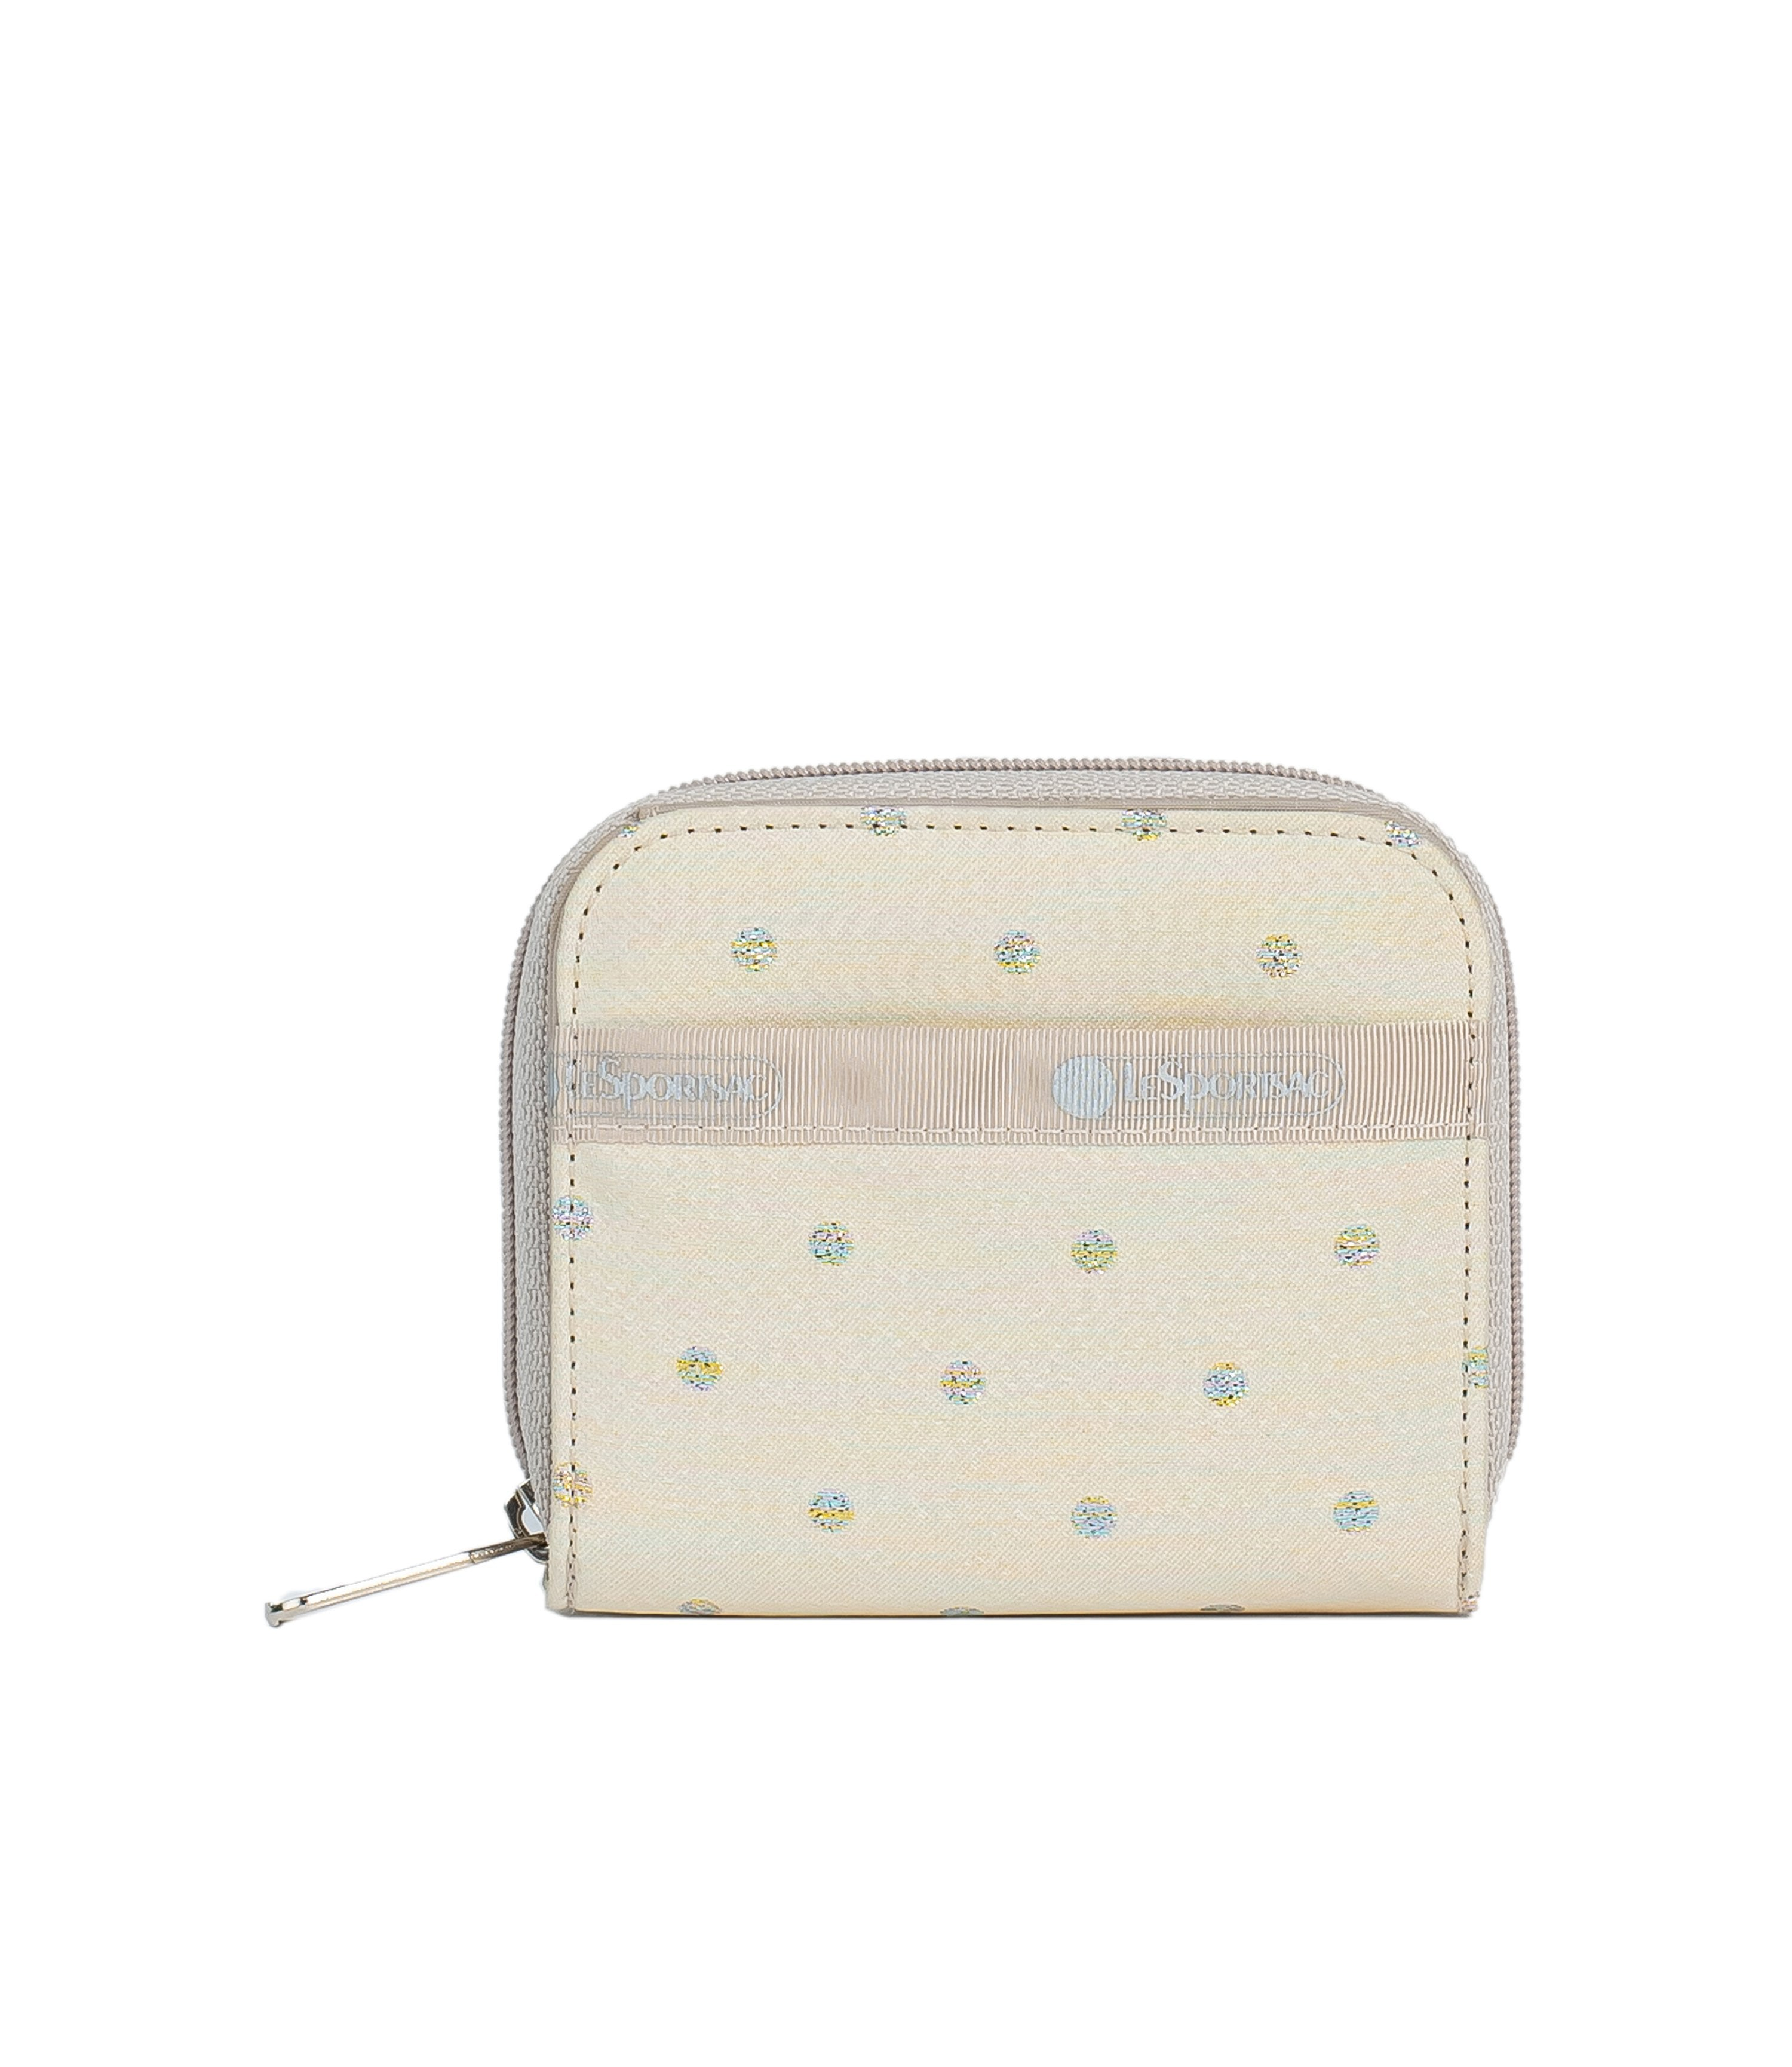 LeSportsac - Accessories - Claire Wallet - Rainbow Dot jacquard